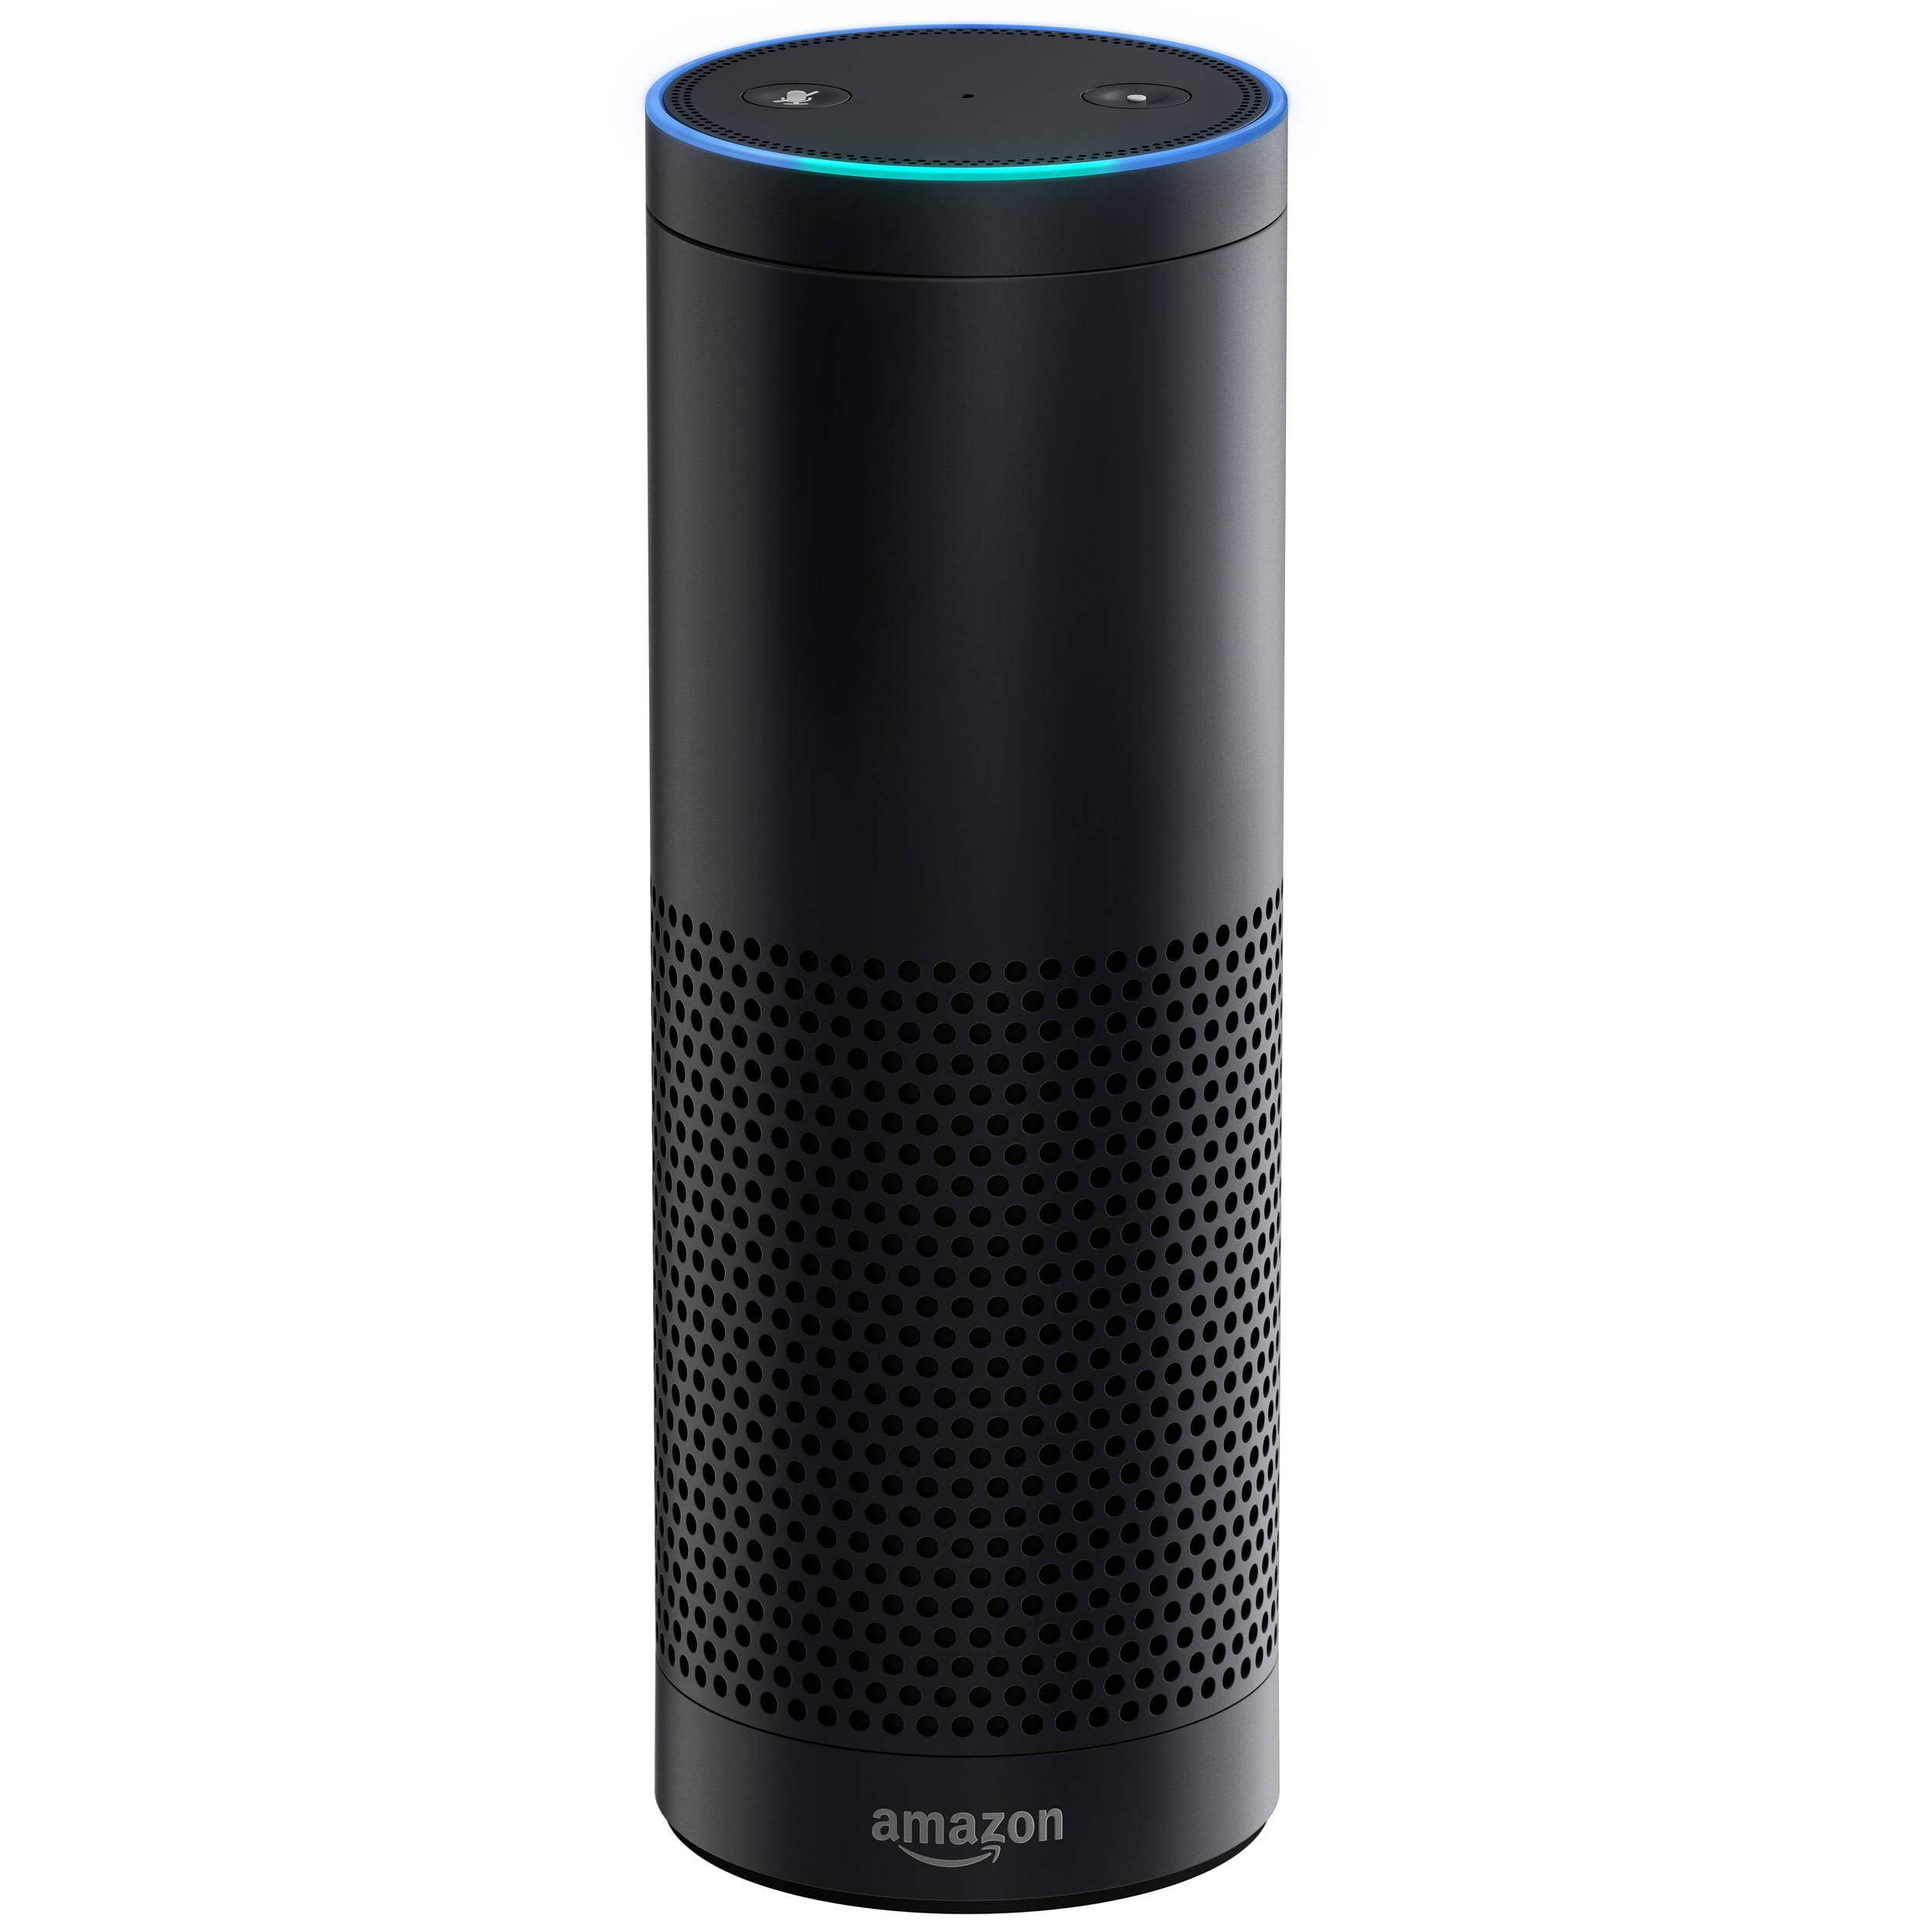 Ship amazon echo internationally